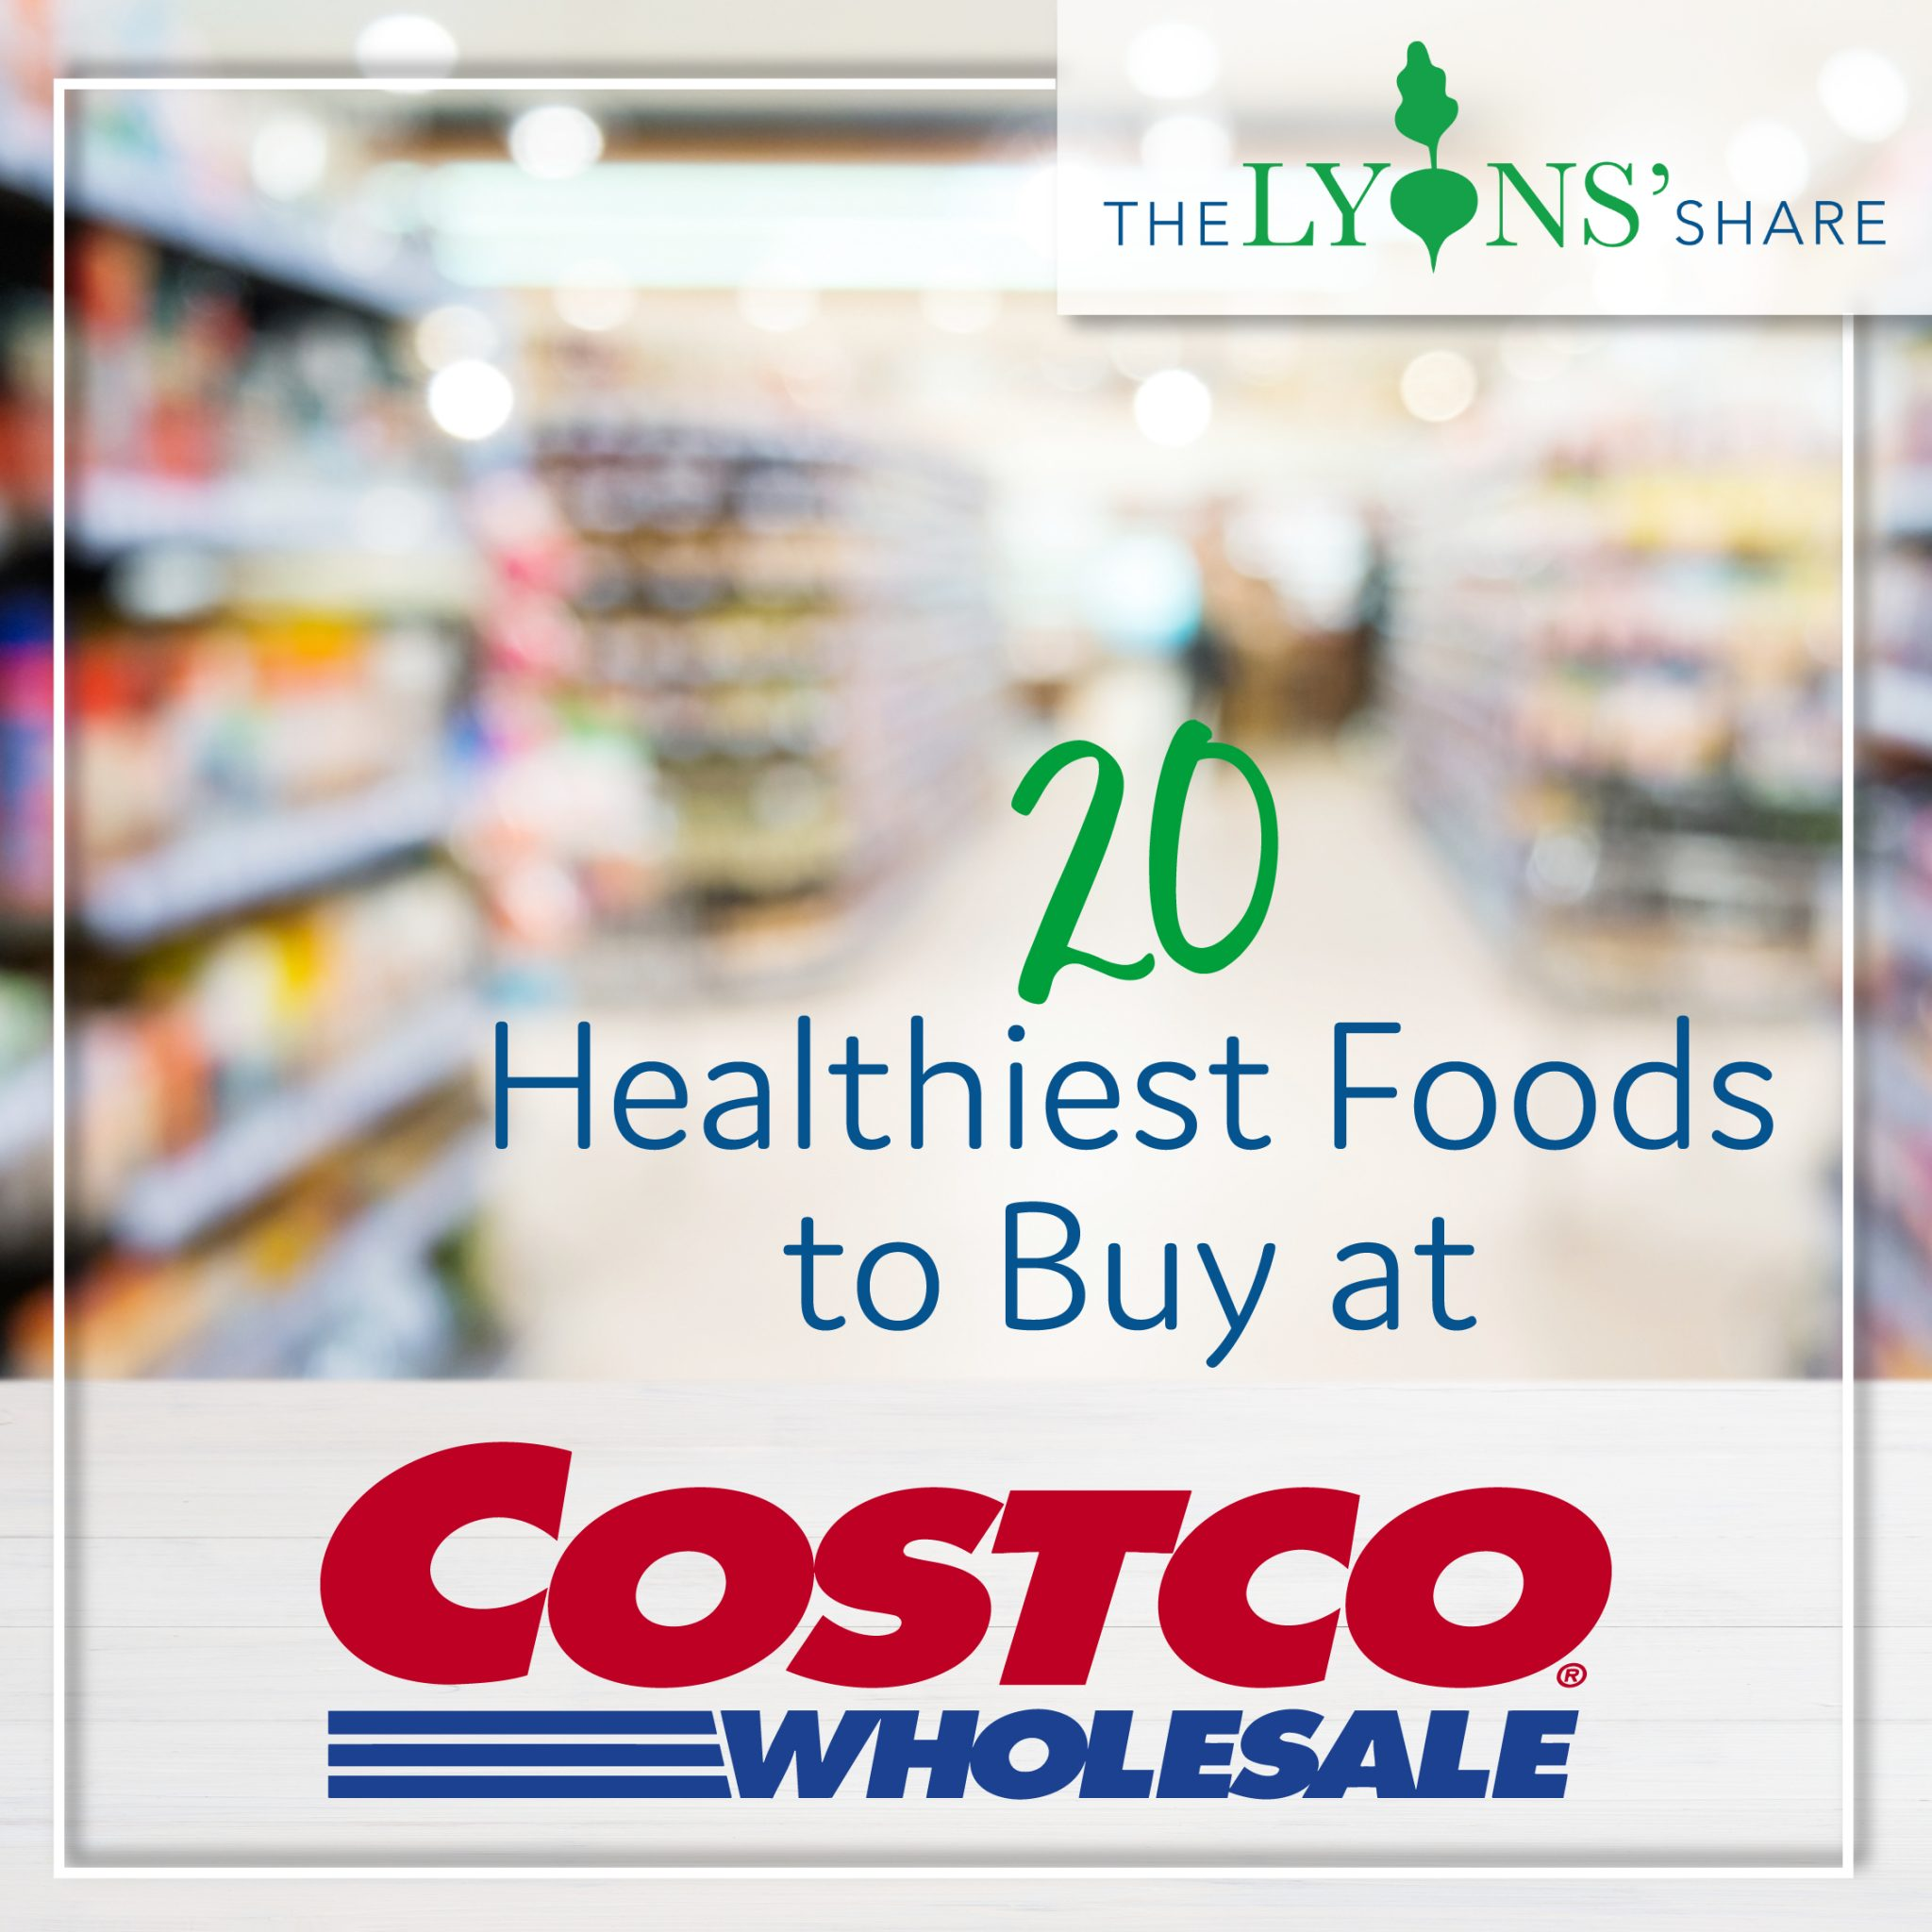 20 Healthiest Foods to Buy at Costco